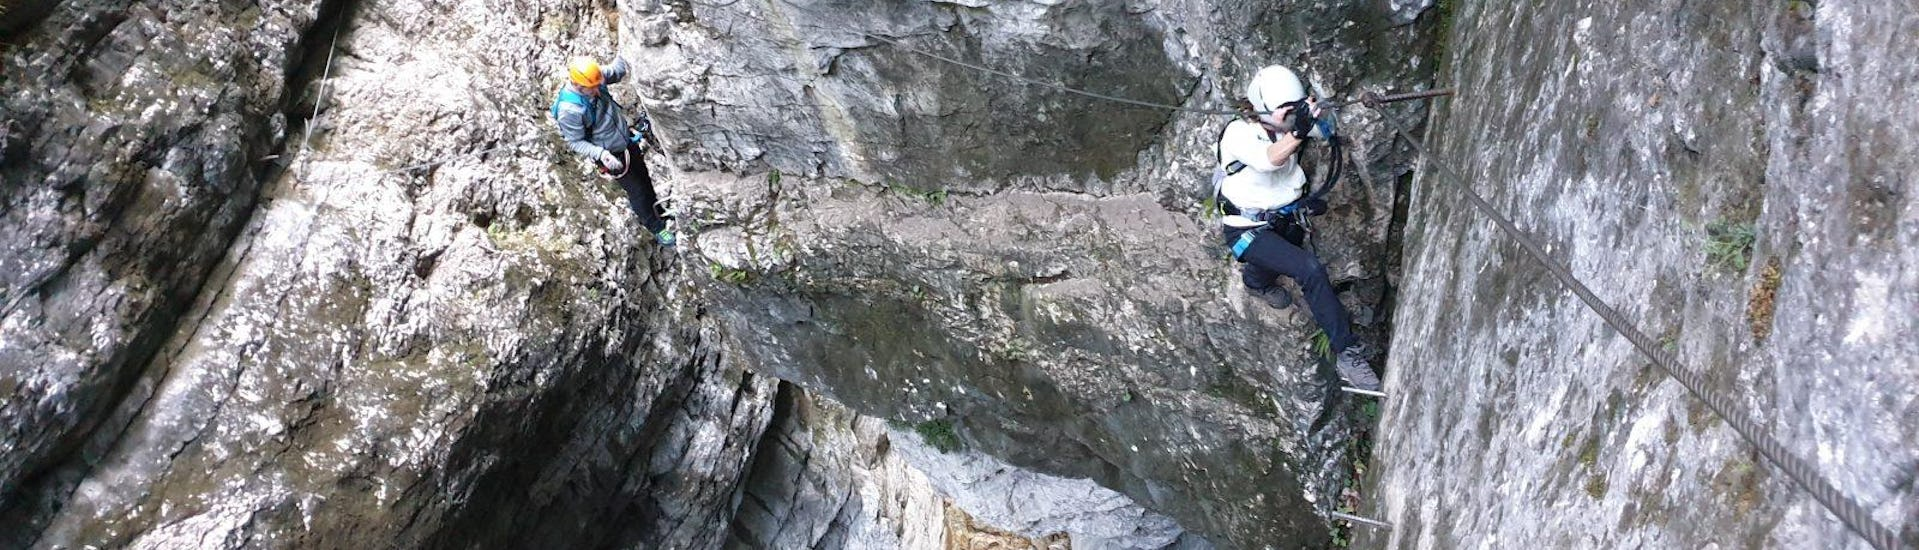 "Two people climbing up the steep cliffs of ""Gamsleckenwand"" on their Via Ferrata Tour for Adventurers with the experienced instructor from Bergführer Salzburg."